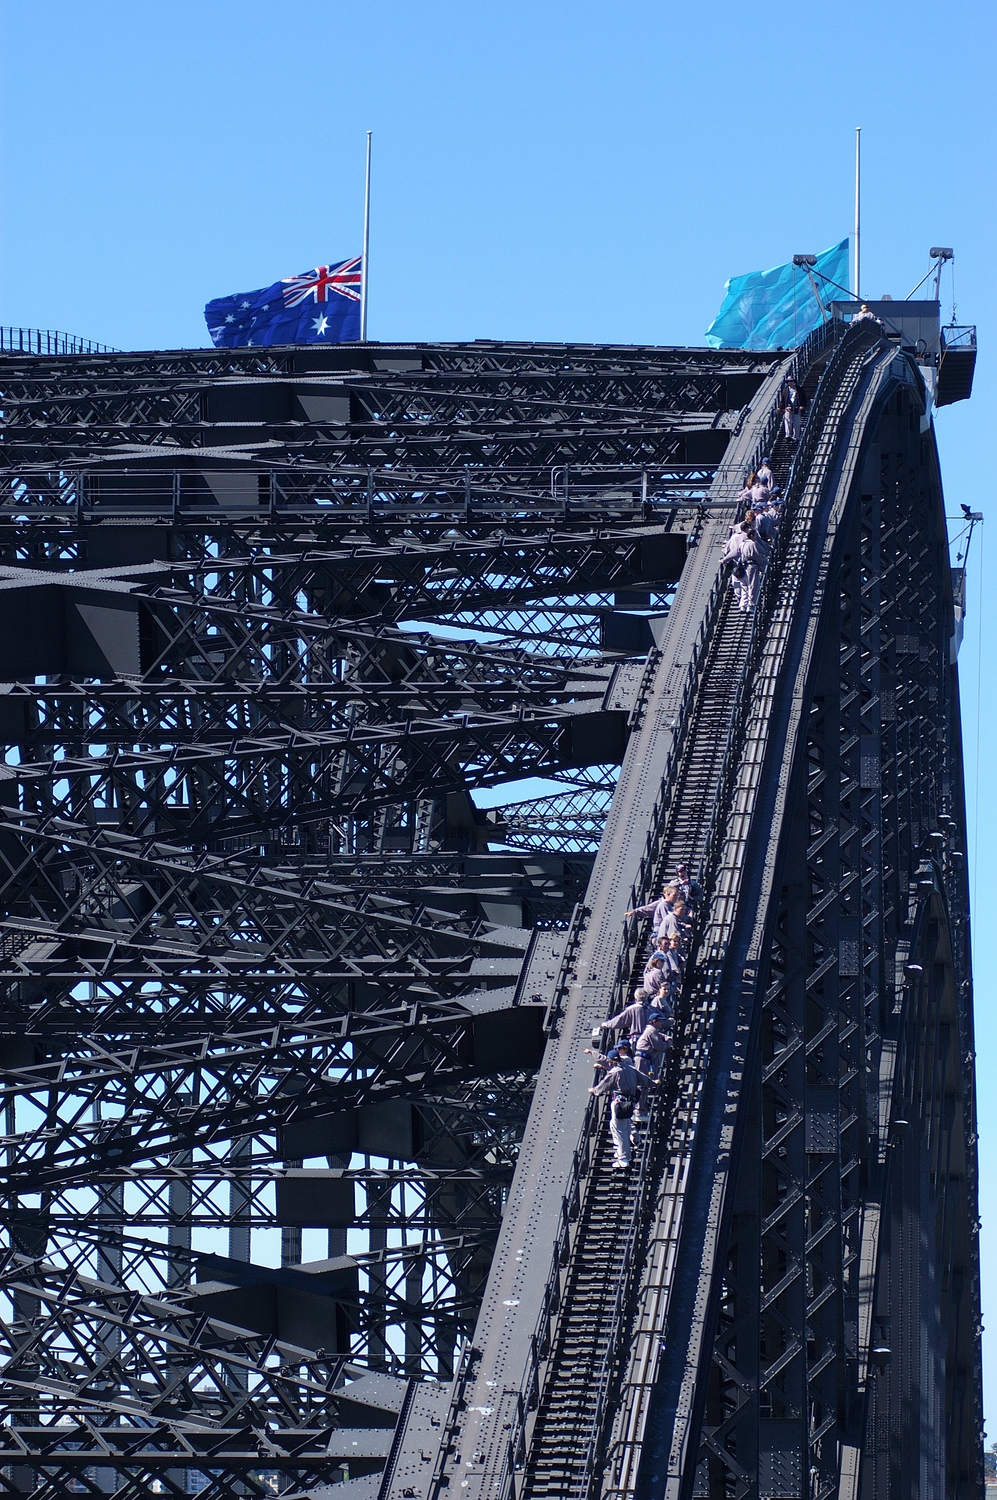 Bridge Climbers working their way up the bridge- notice the flags still flying at half mast after the Bali bombings.